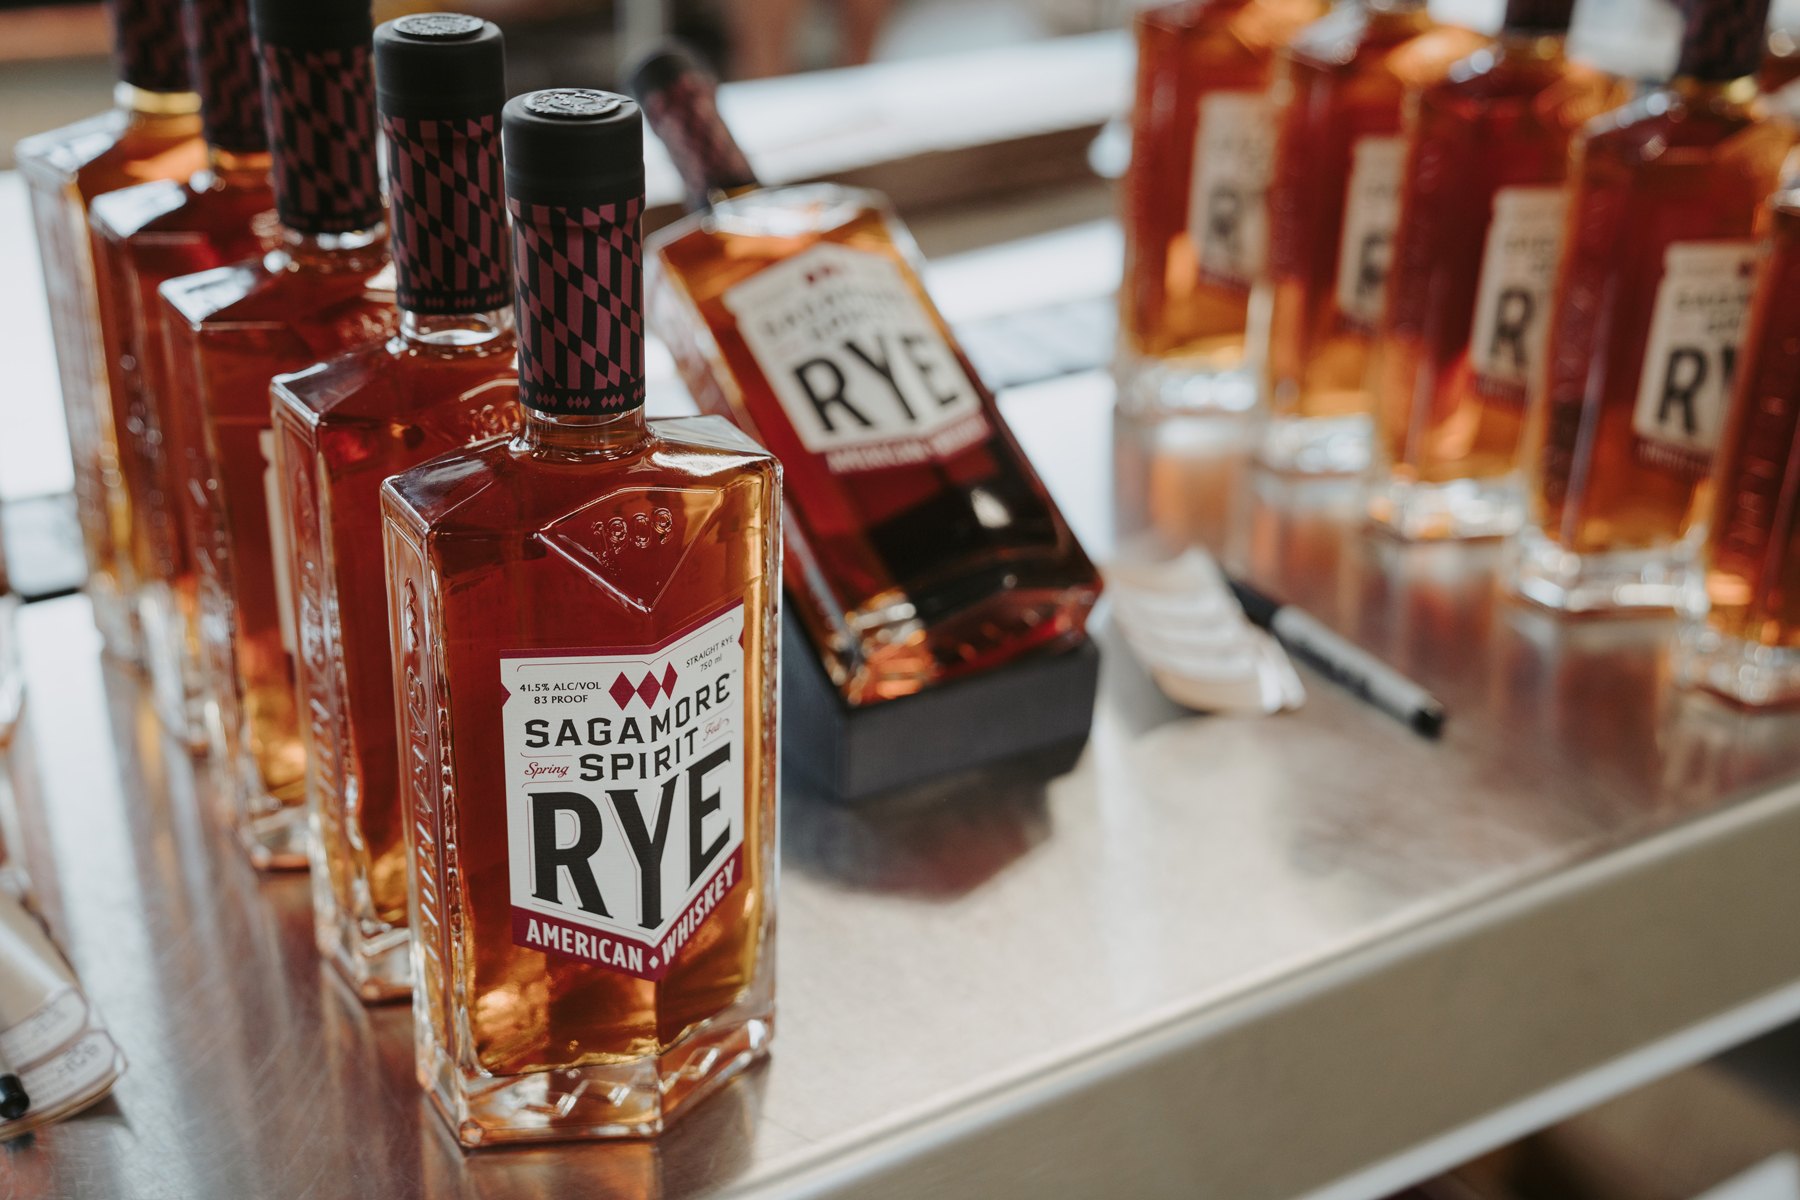 Bottles of Sagamore Spirit's Rye Whiskey